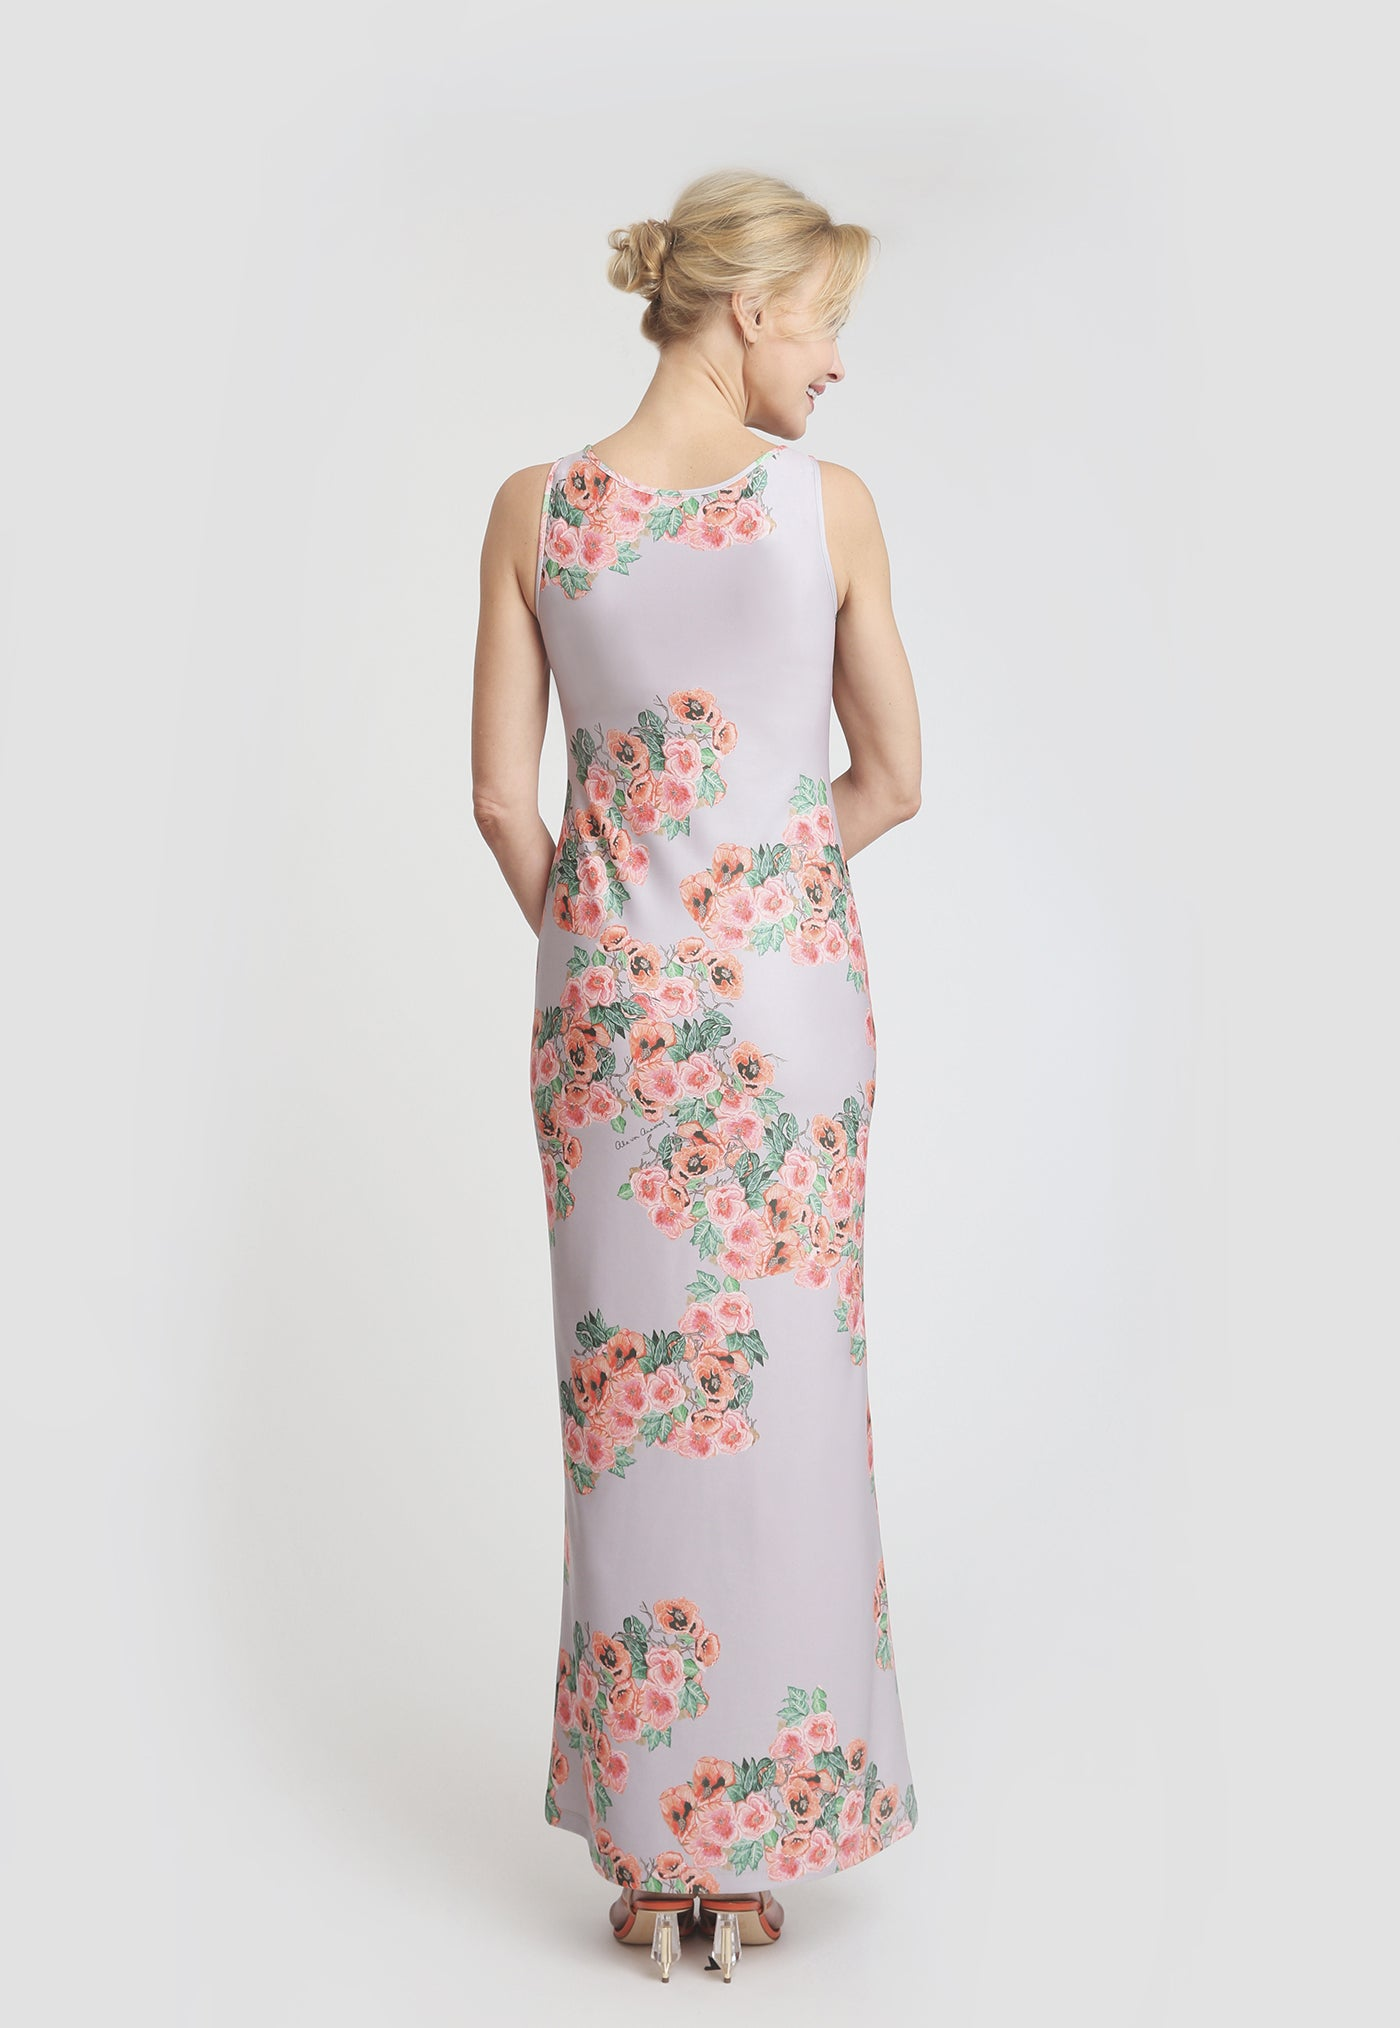 Long sleeveless dress with pink floral print and a lilac base color